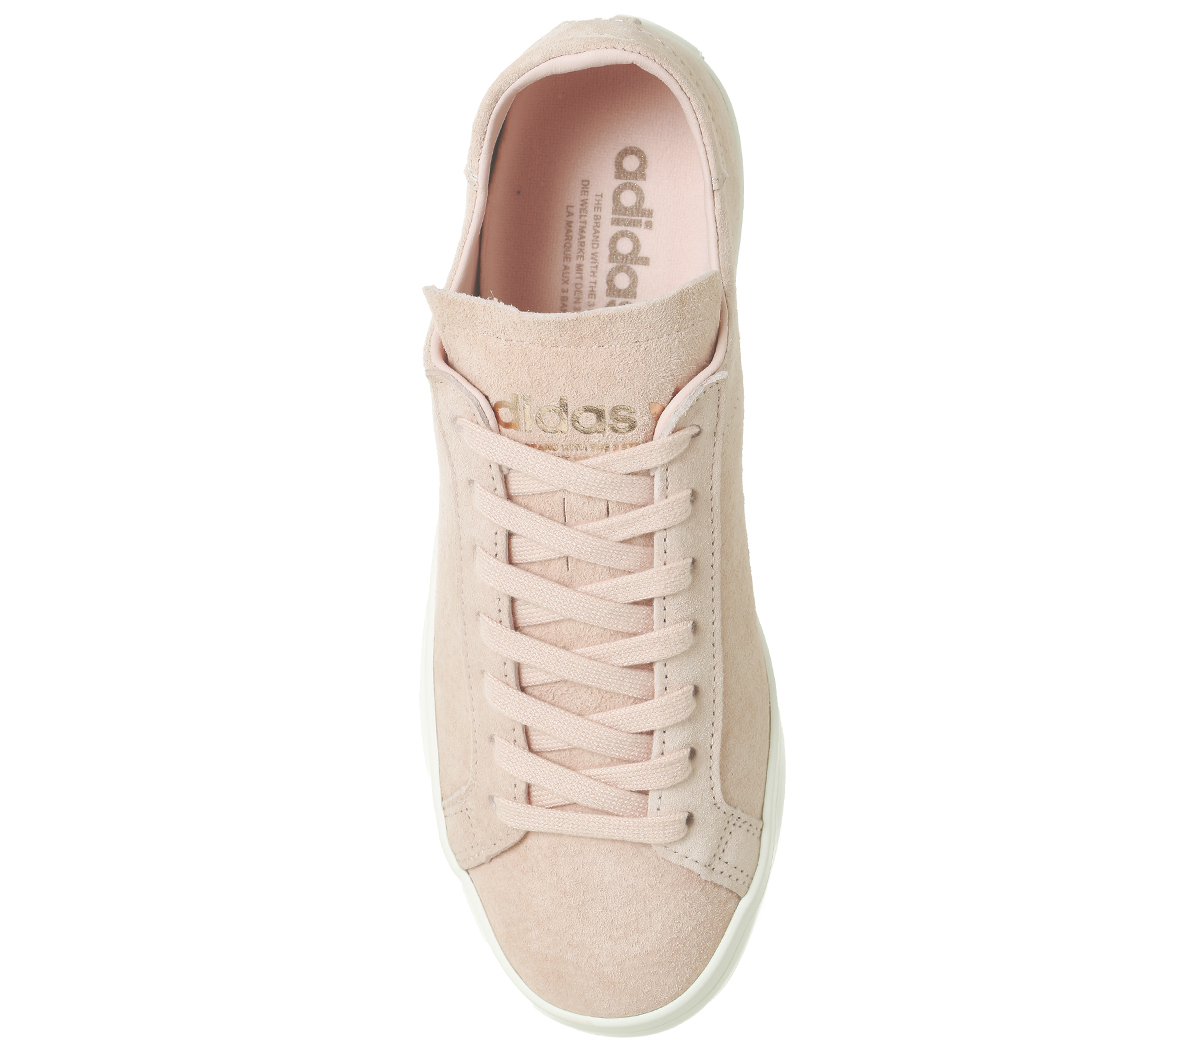 eb5776ed0d7 Details about Womens Adidas Court Vantage Trainers VAPOUR PINK OFF WHITE  EXCLUSIVE Trainers Sh